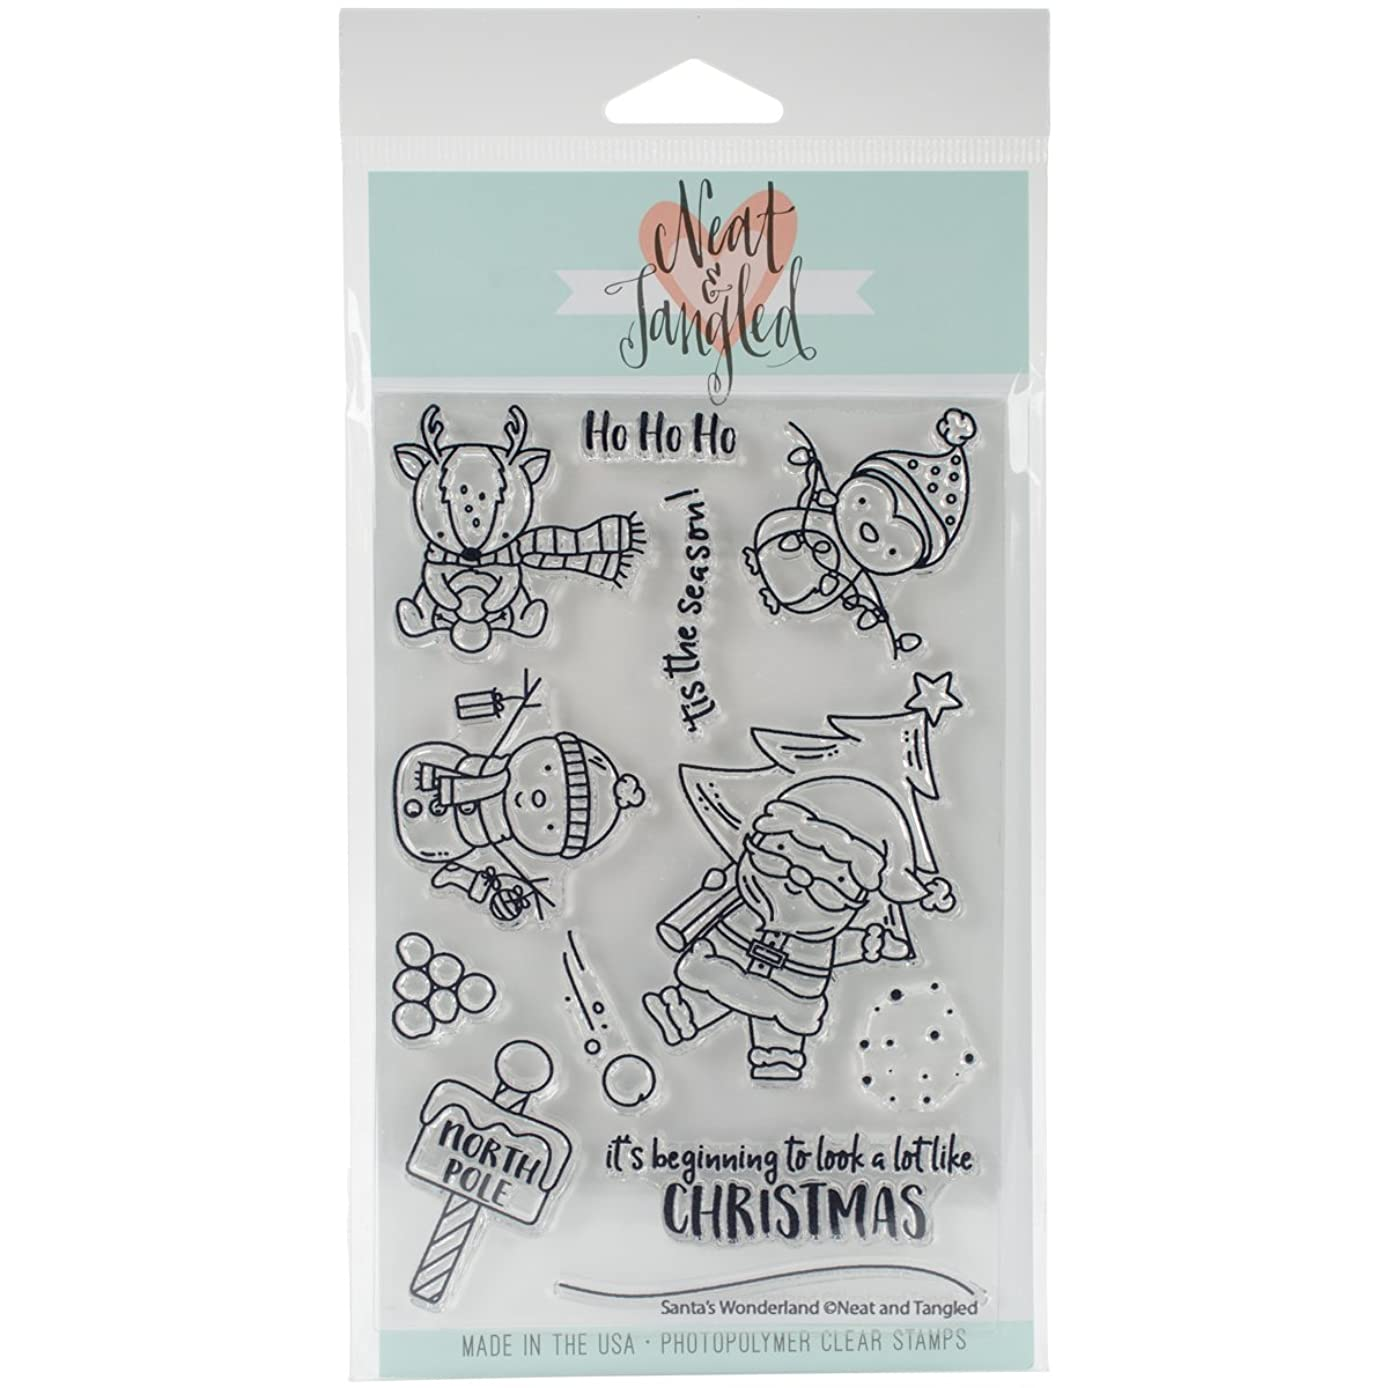 Neat & Tangled Santa's Wonderland Clear Stamps, 4